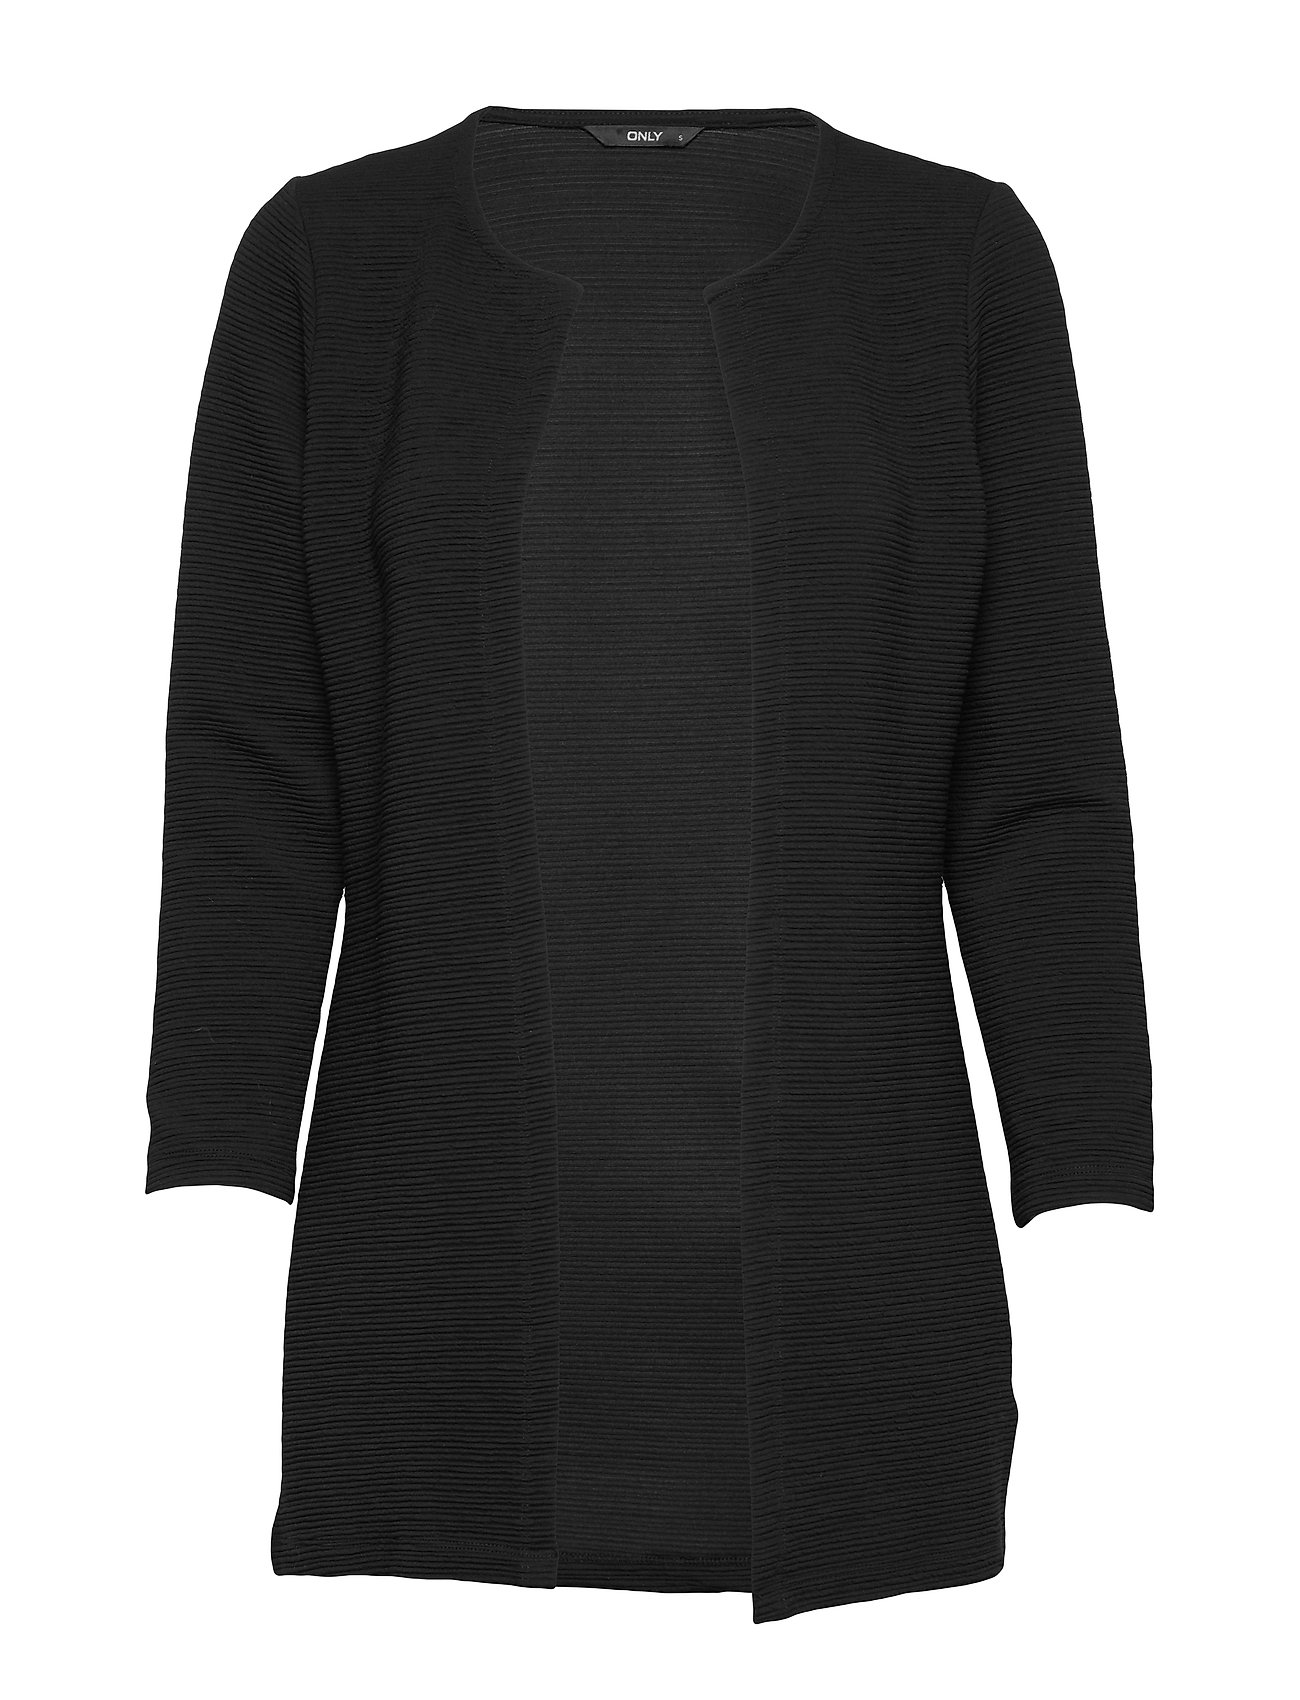 ONLY onlLECO 7/8 LONG CARDIGAN JRS NOOS - BLACK